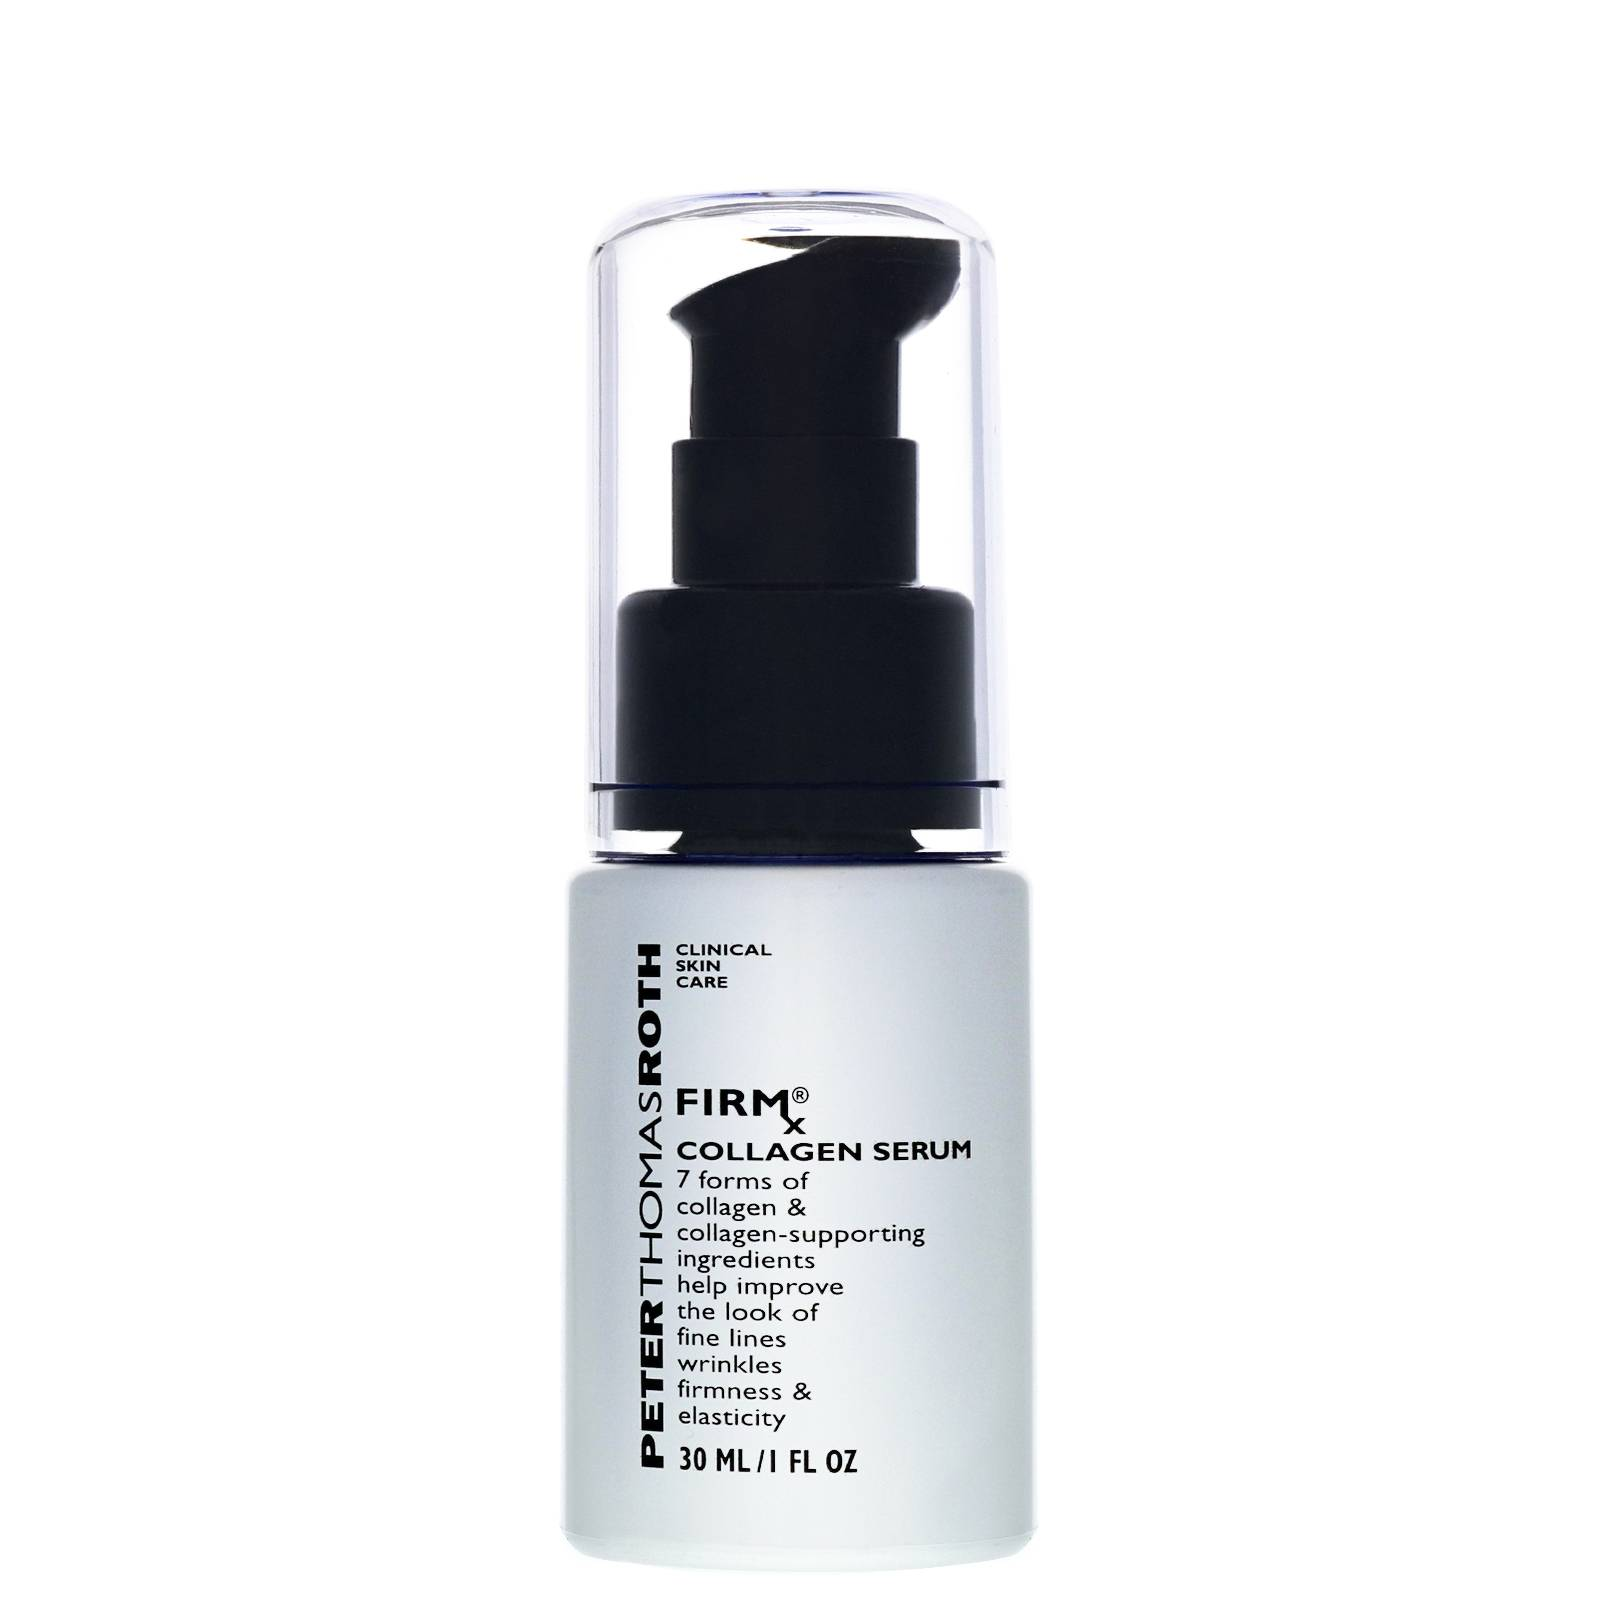 Roth Peter Thomas Roth - FIRMx Collagen Serum 30ml for Women